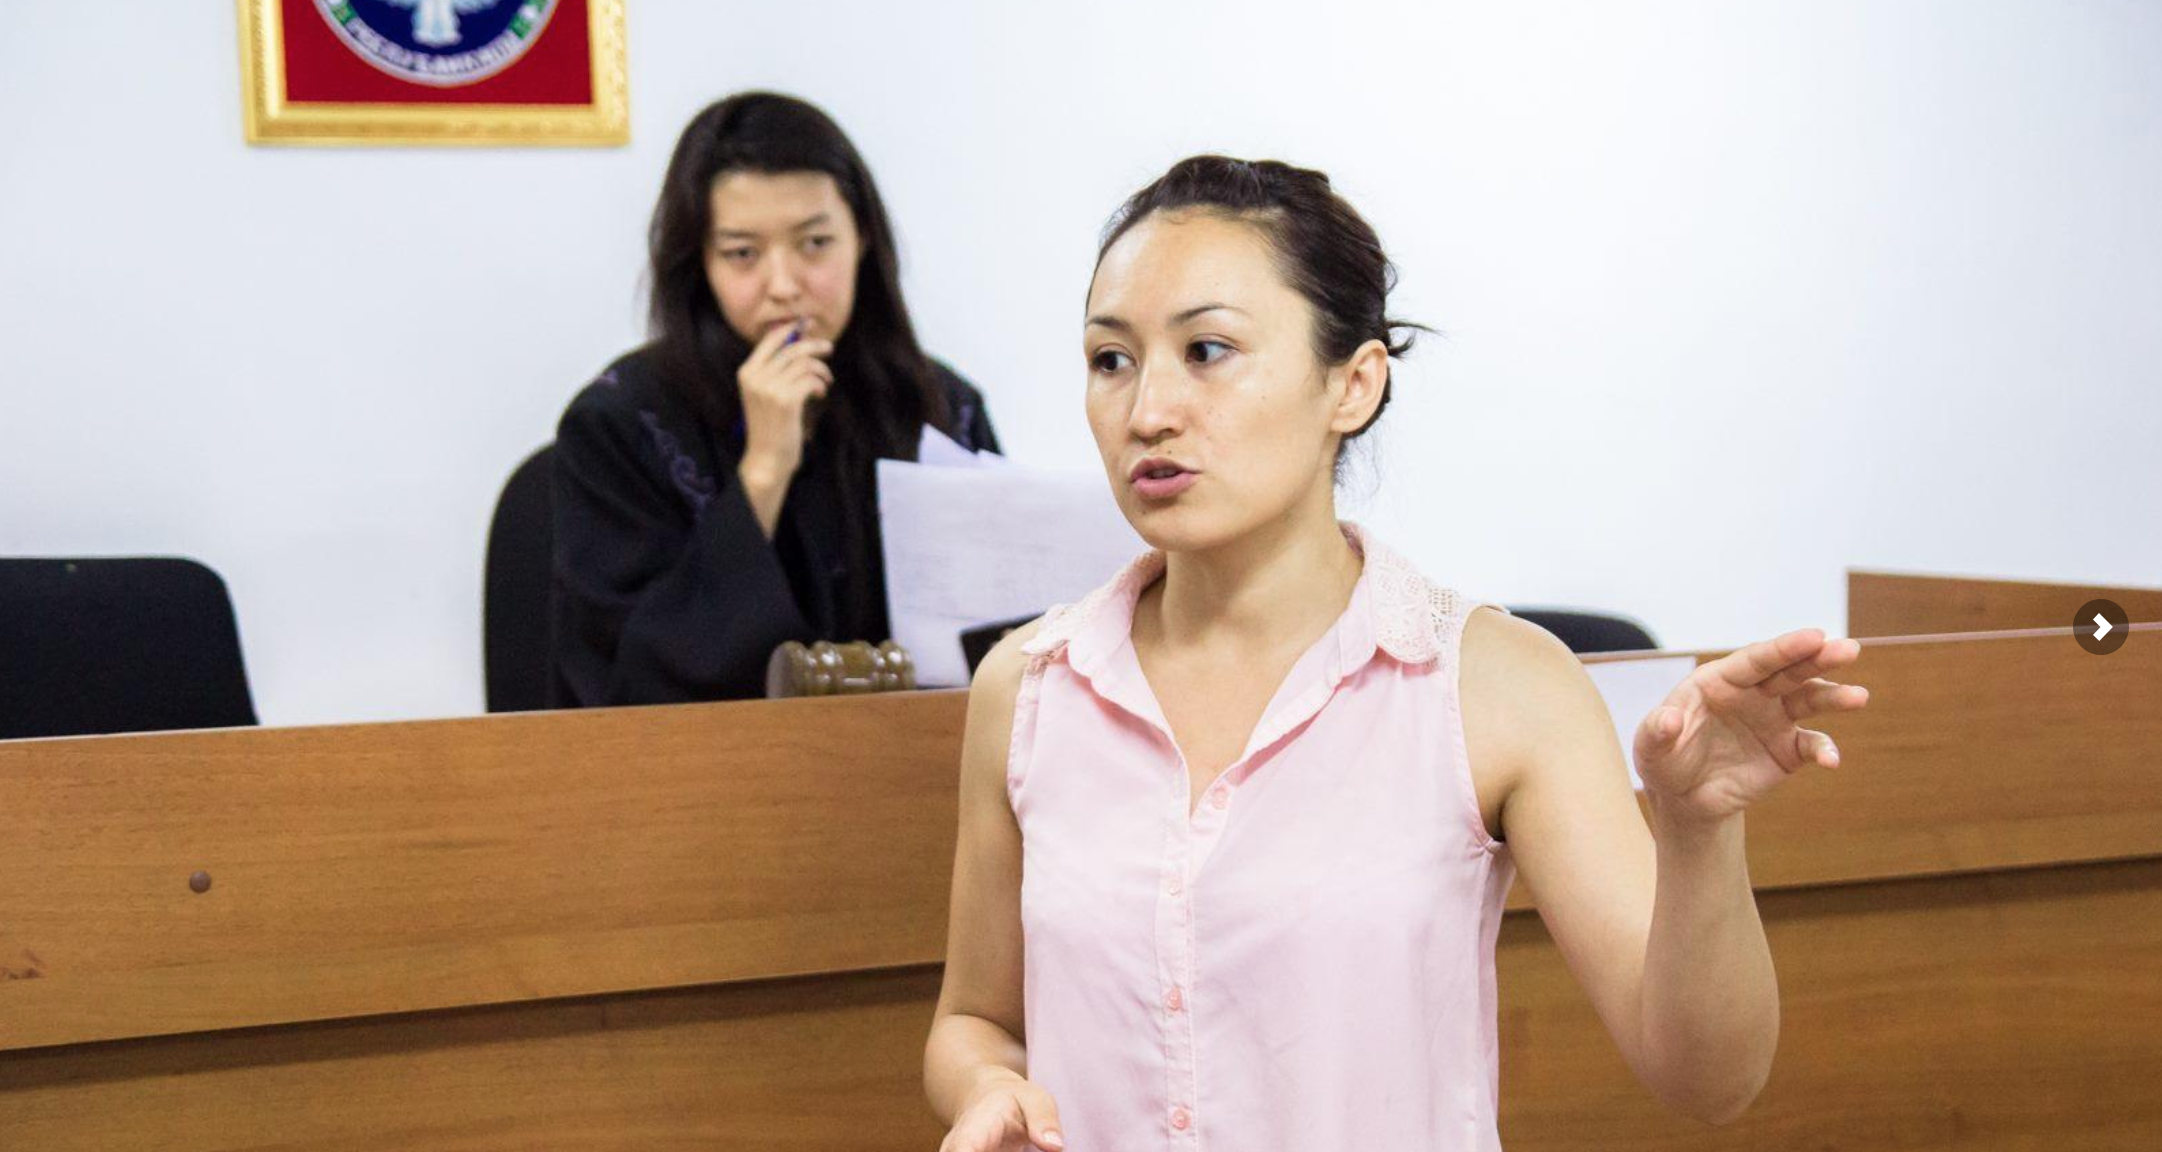 Students participate in mock trial in Kyrgyzstan